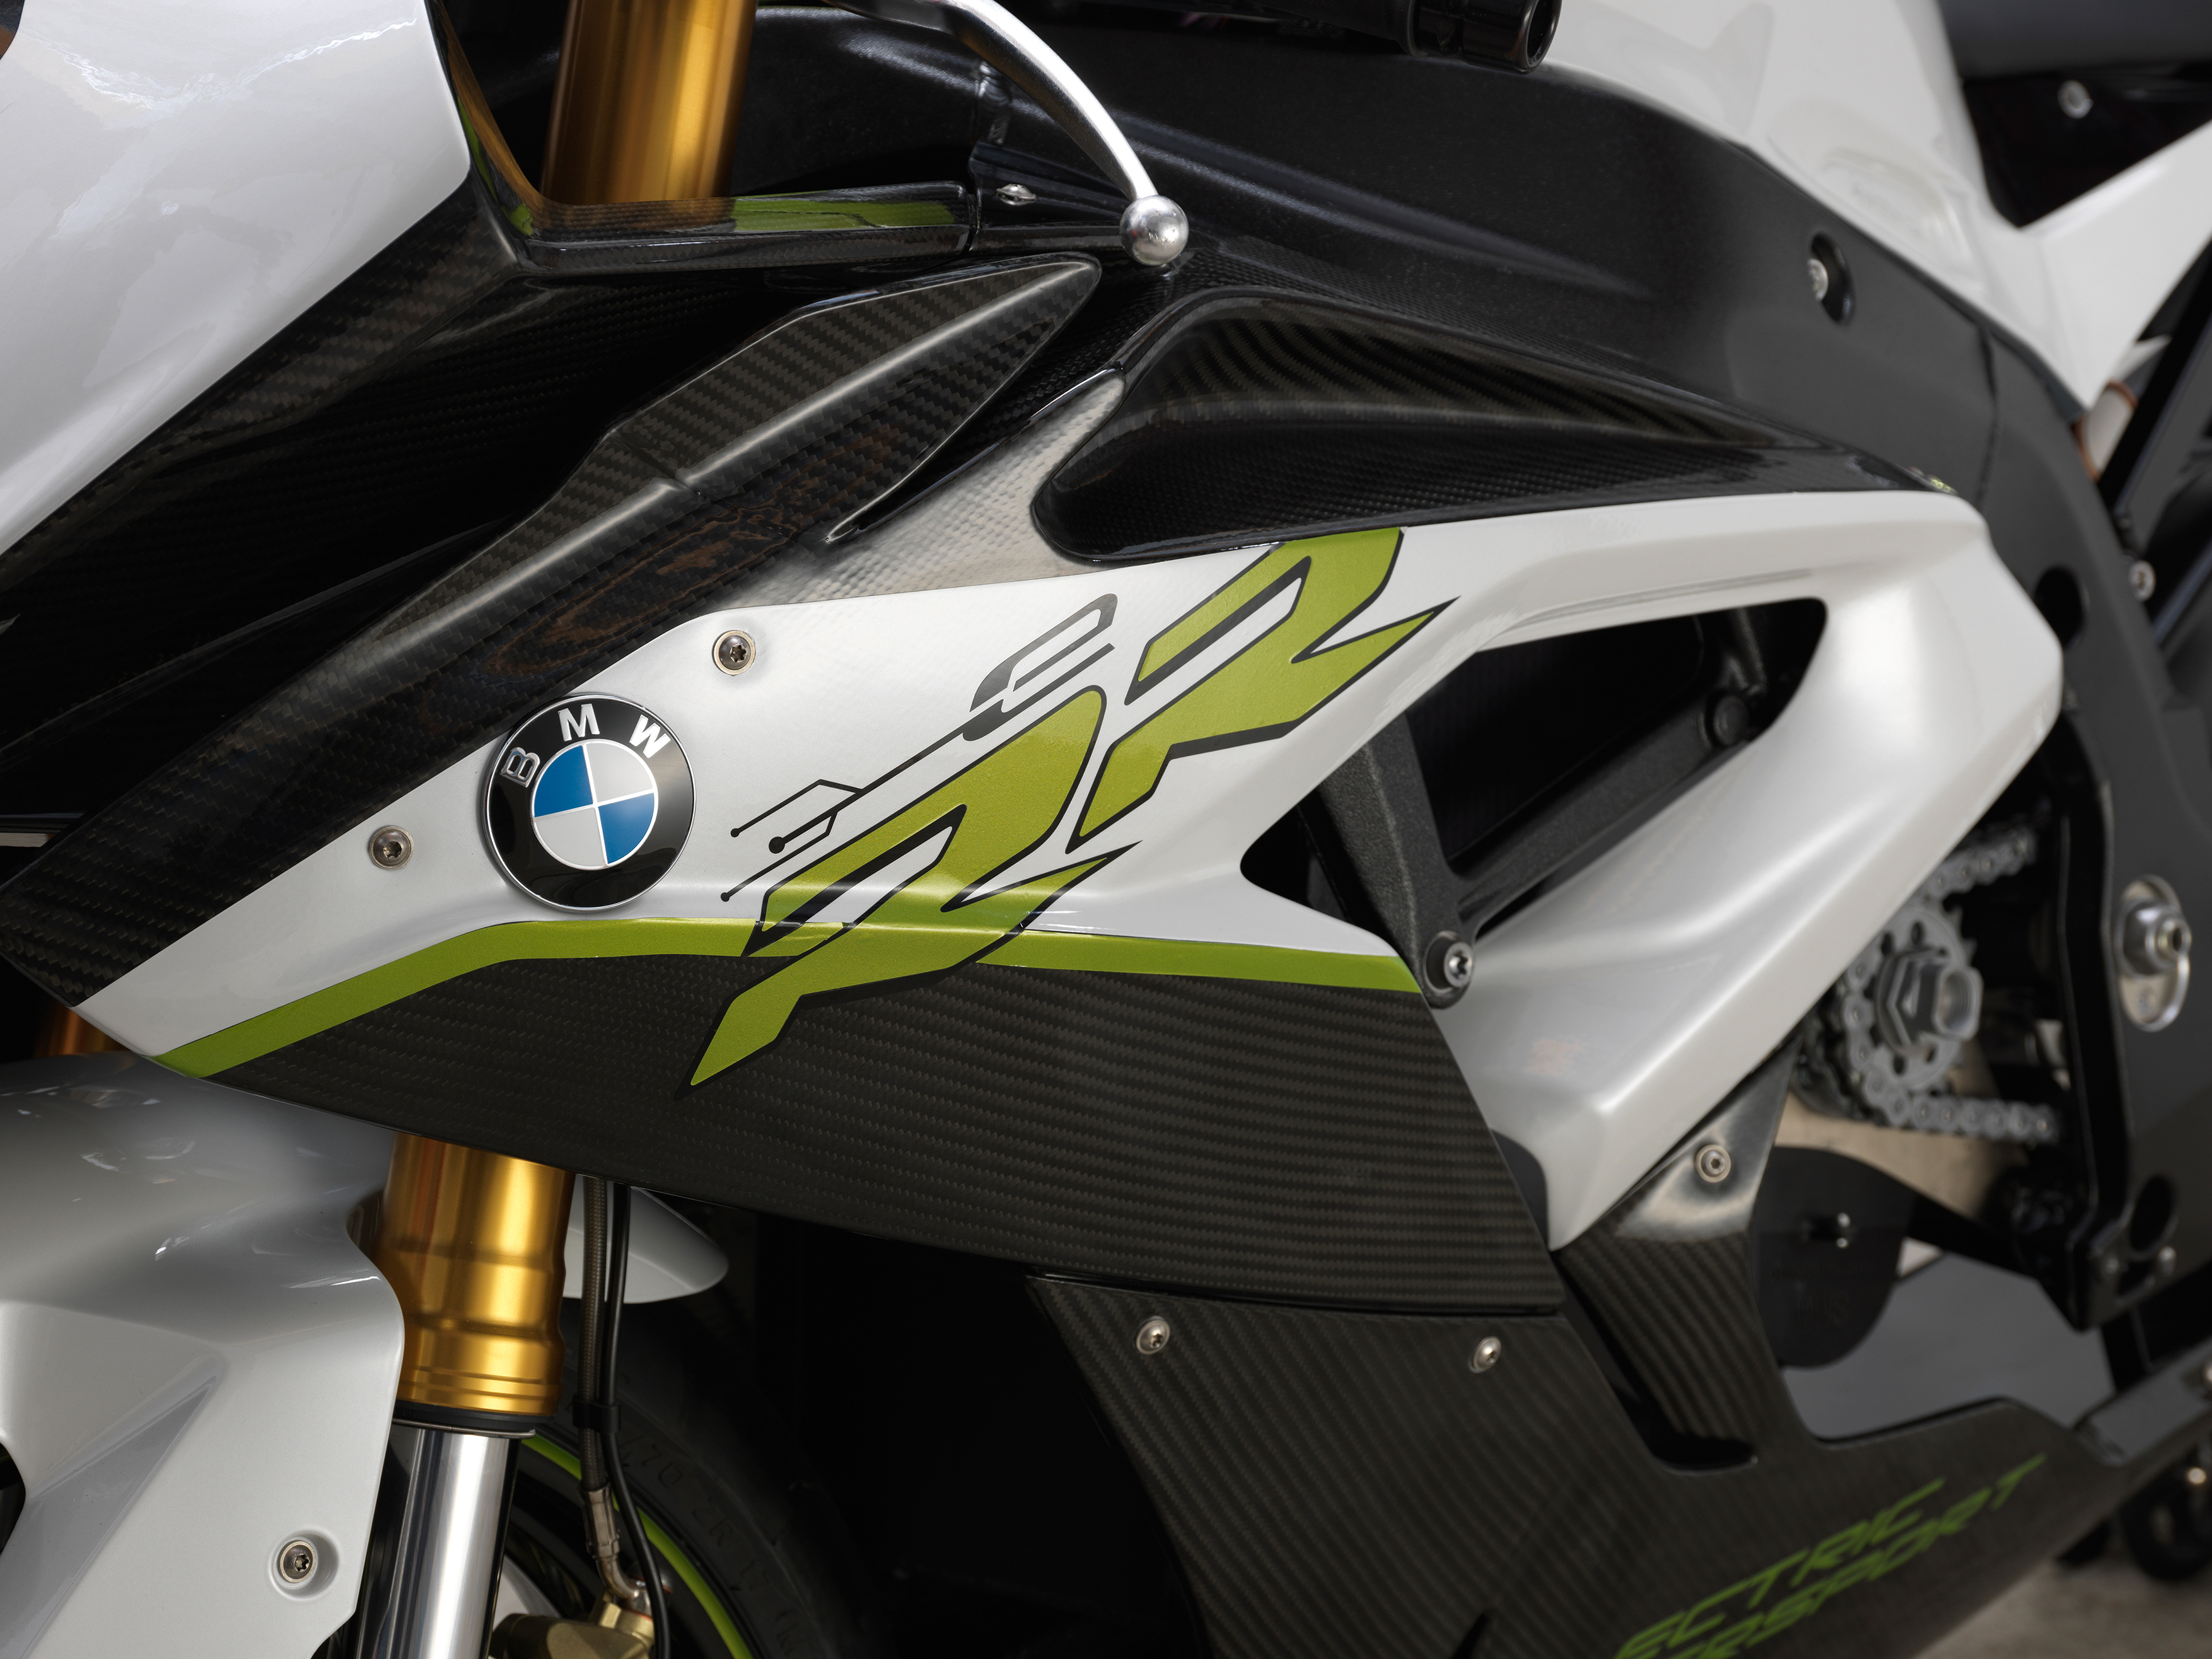 BMW's electric S1000RR revealed